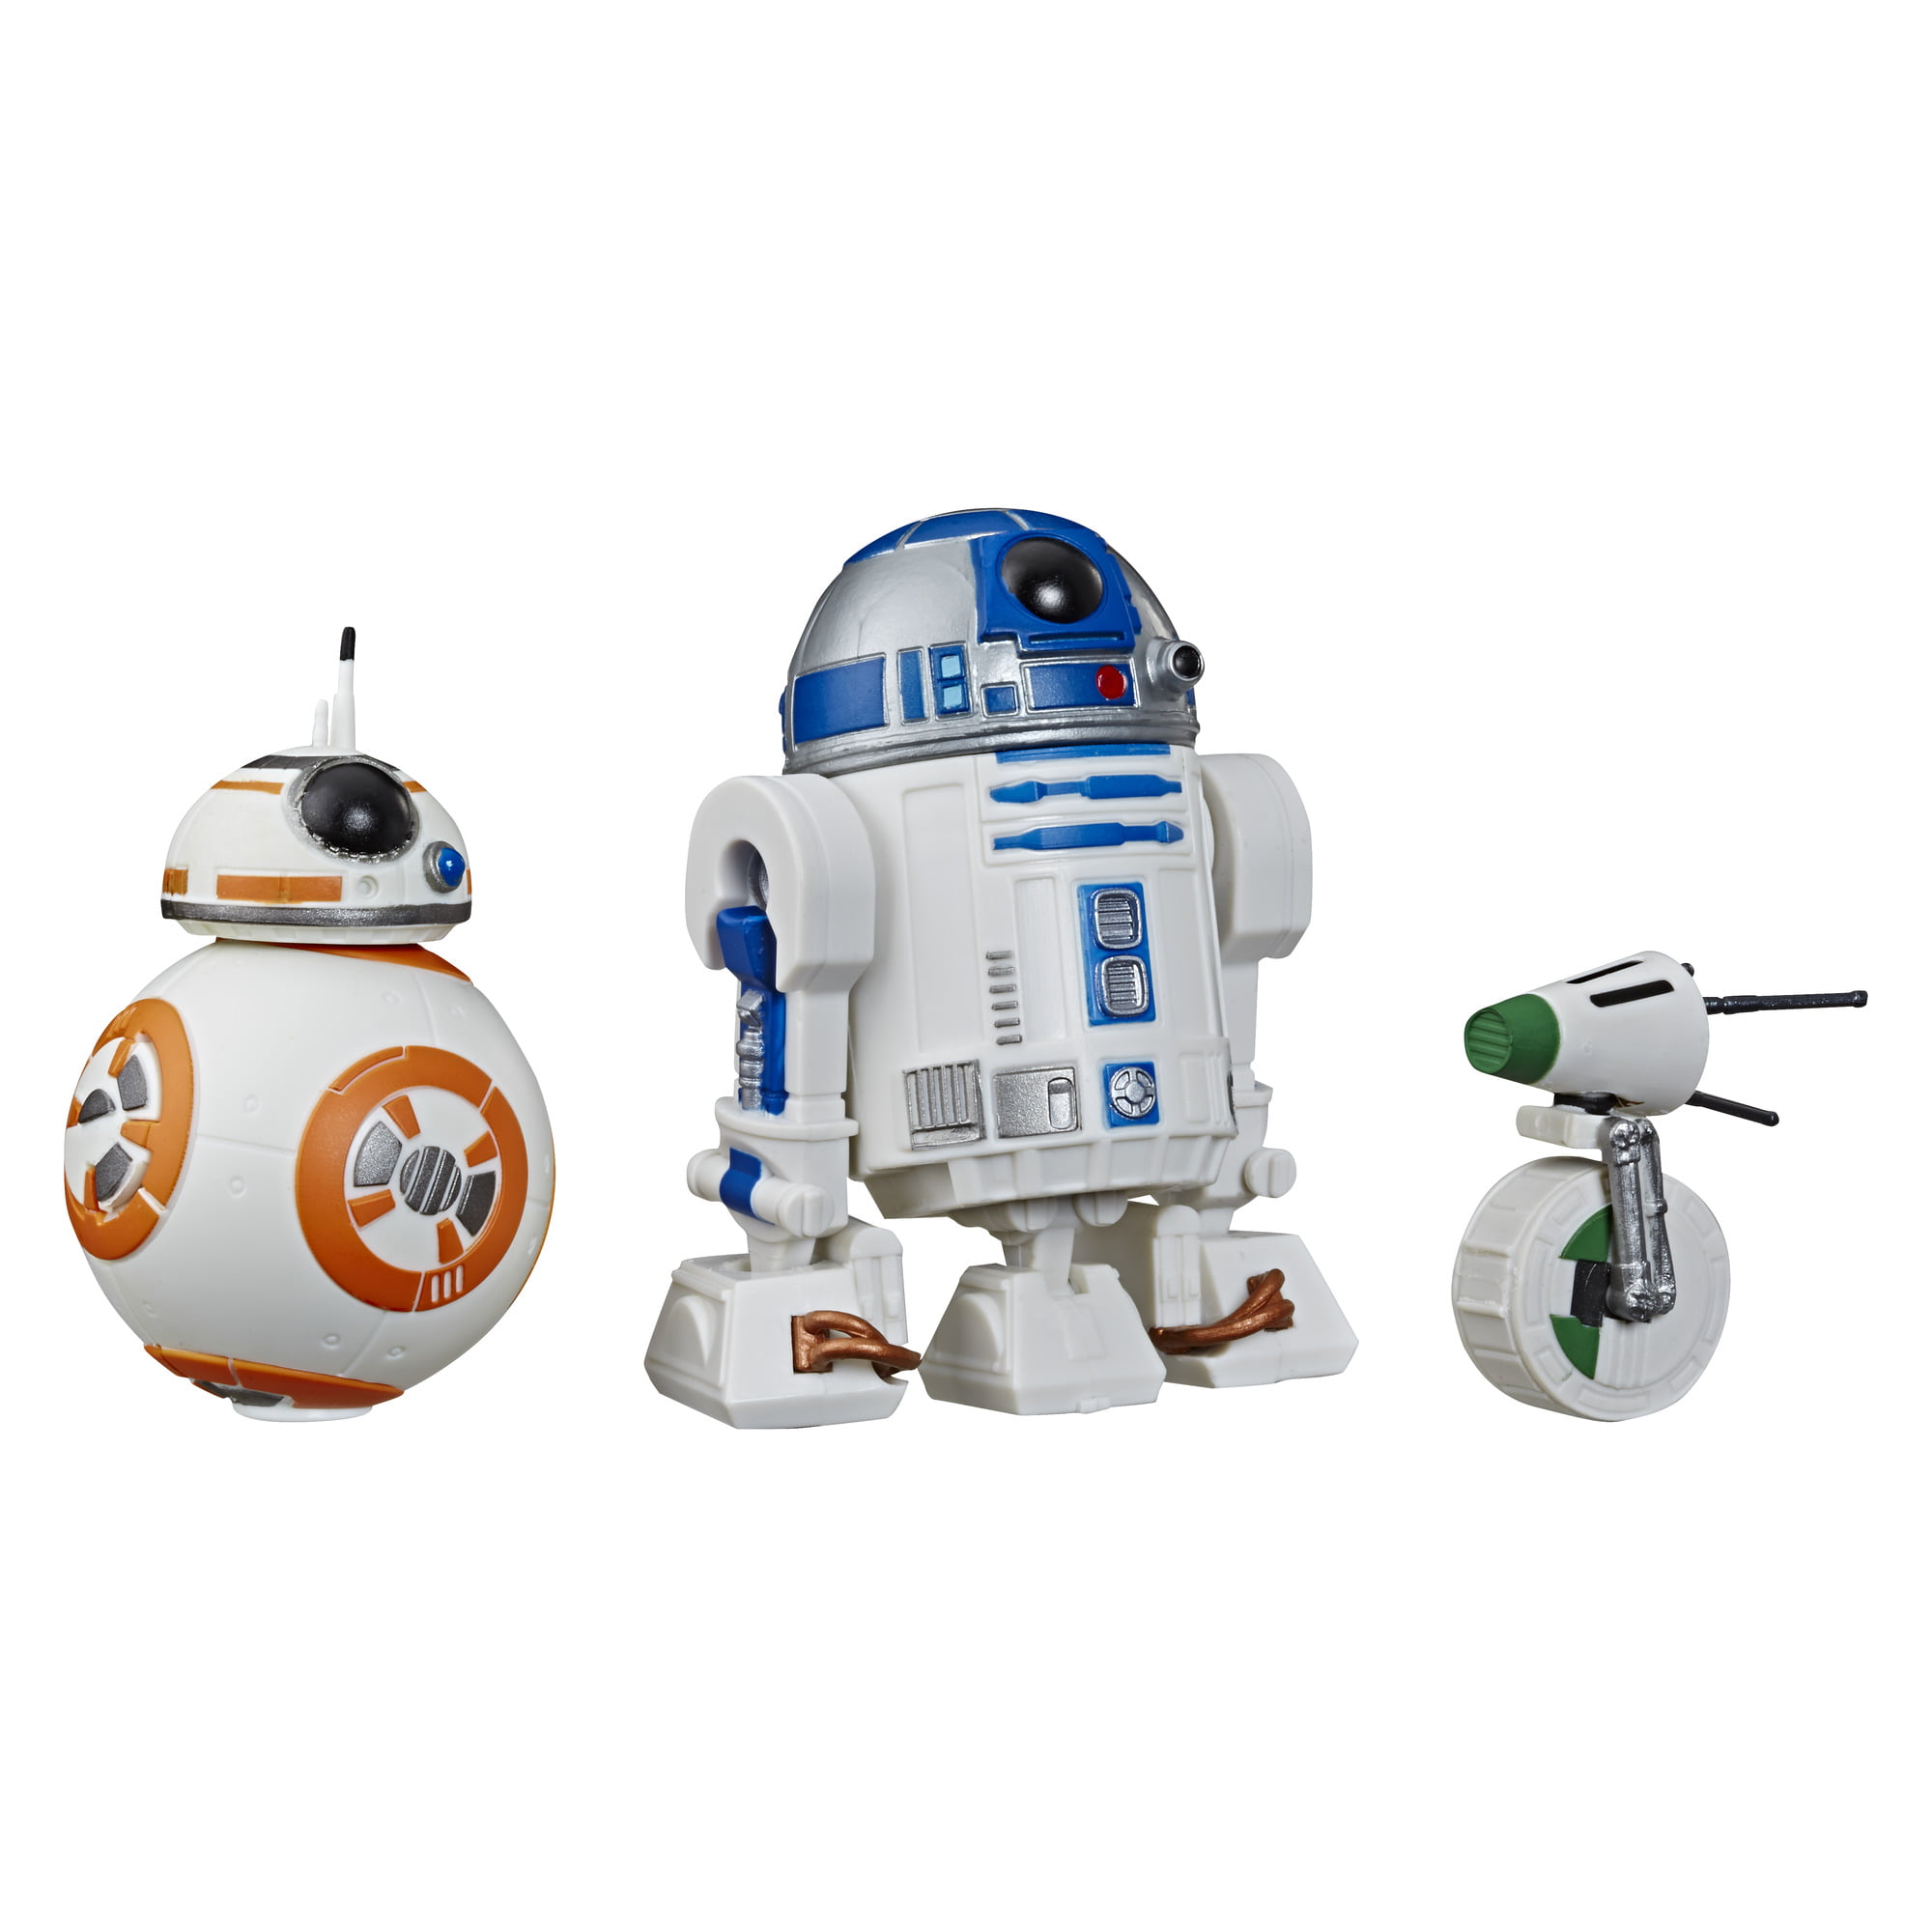 Star Wars Galaxy of Adventures R2-D2, BB-8, D-O 3-pack Toy Droid Figures - Walmart.com